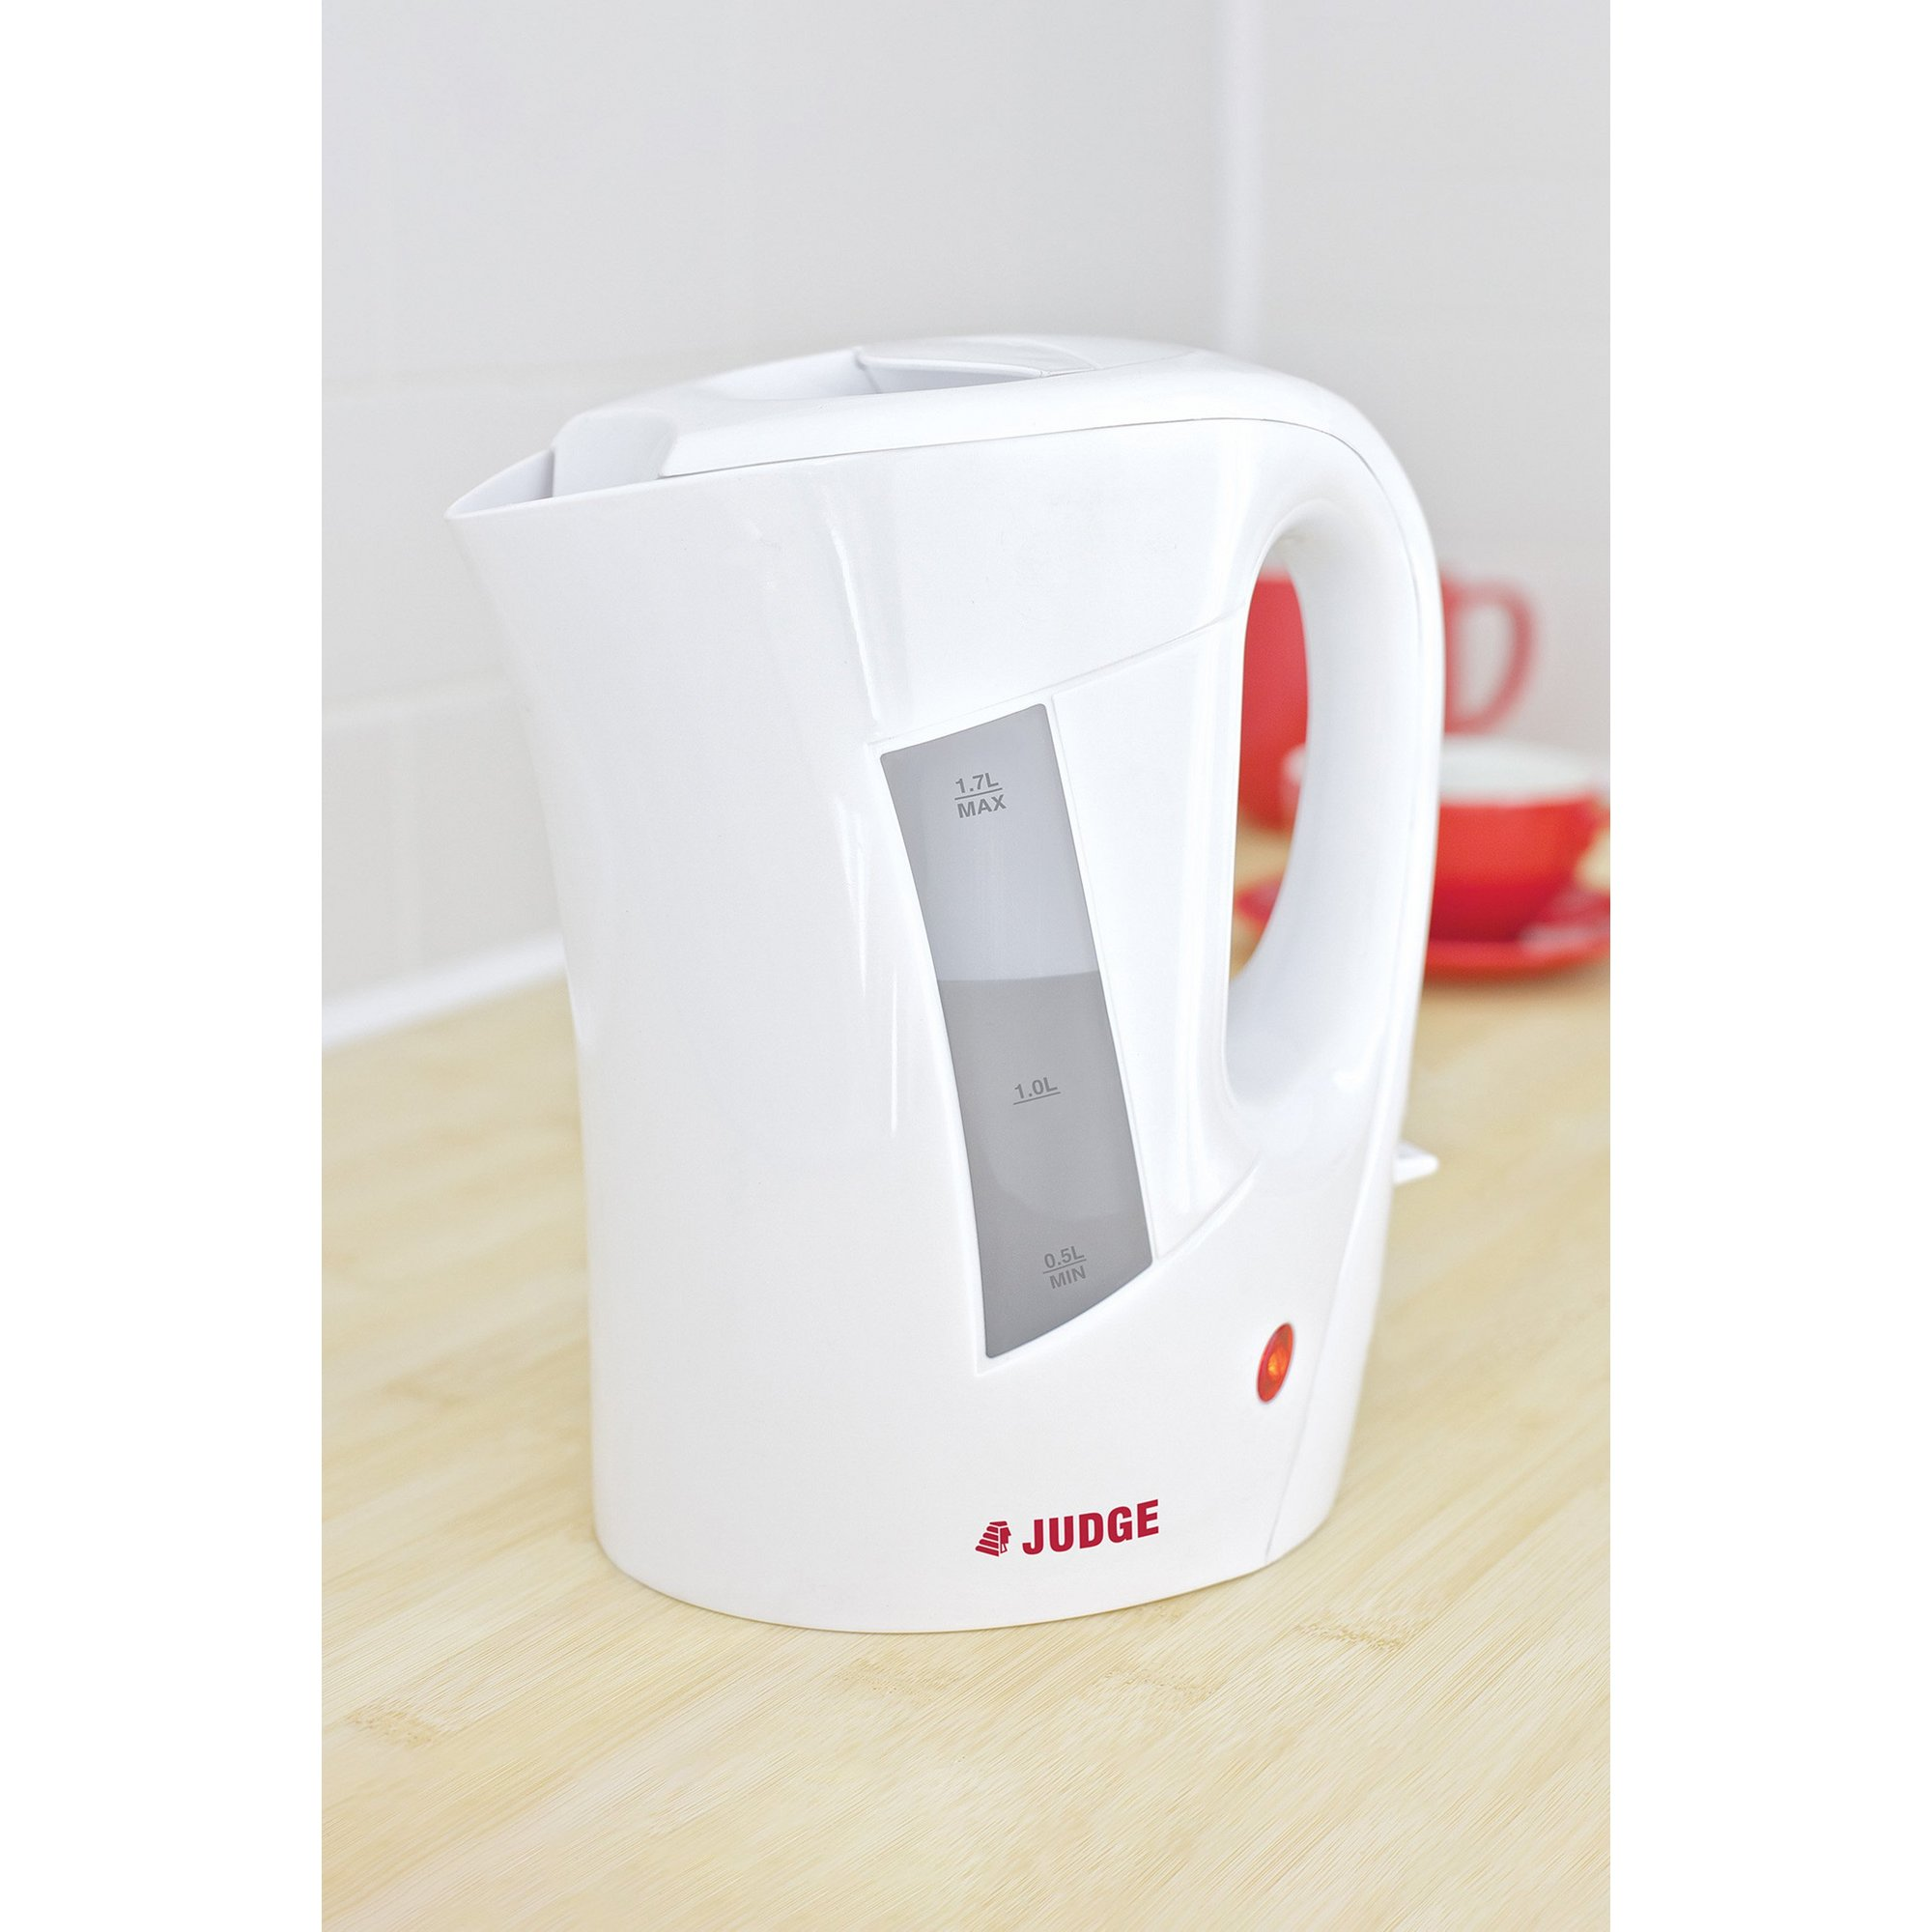 Image of Judge 1.7L Jug Kettle